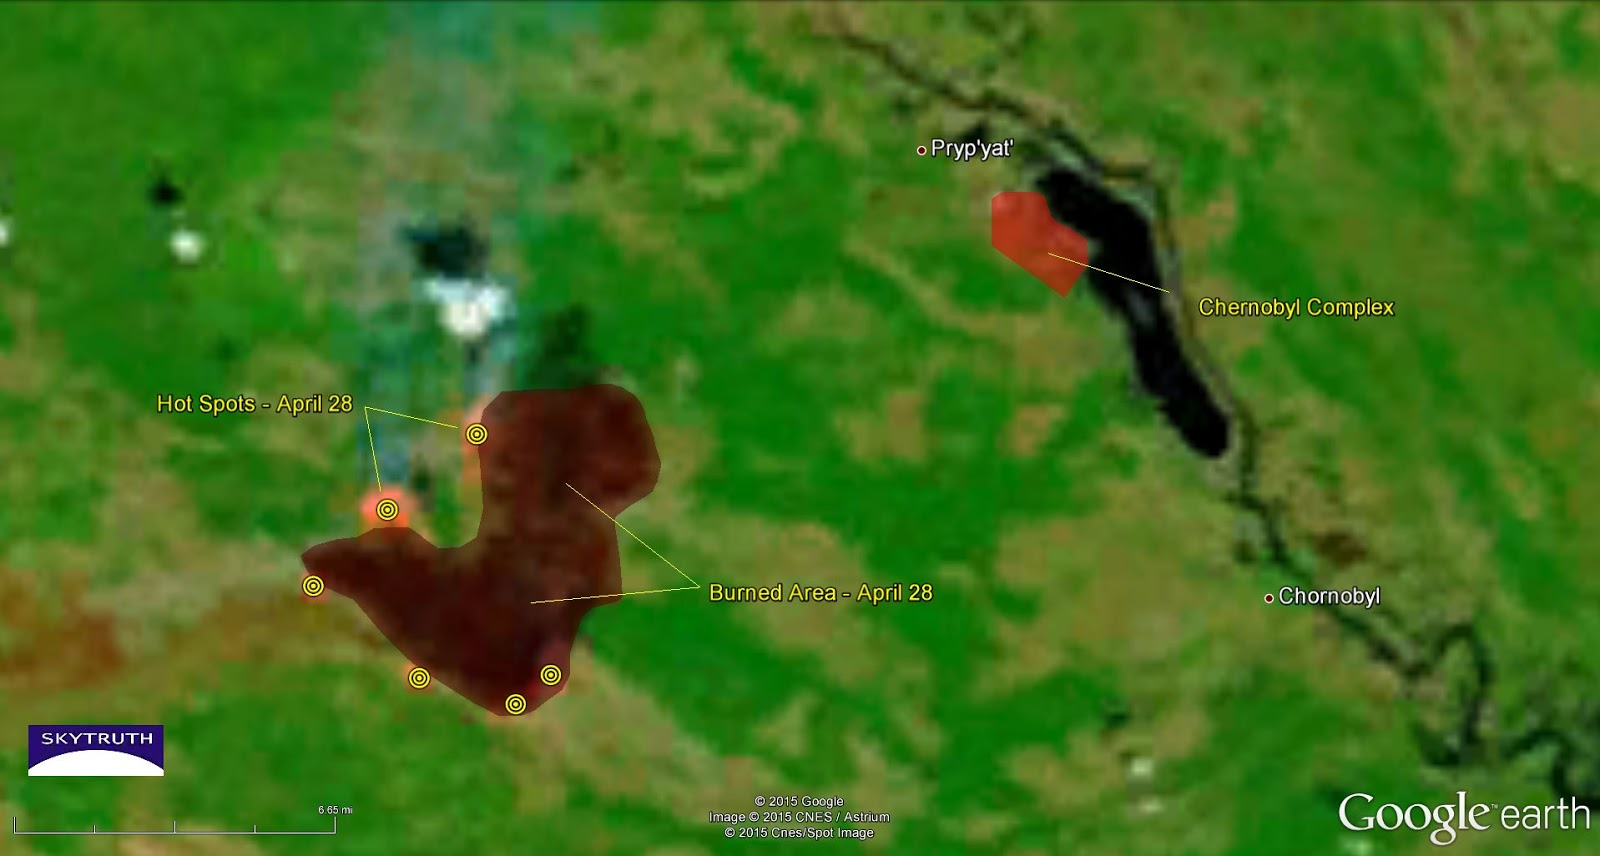 SkyTruth-Chernobyl-wildfire-detail-28april2015-721-annot